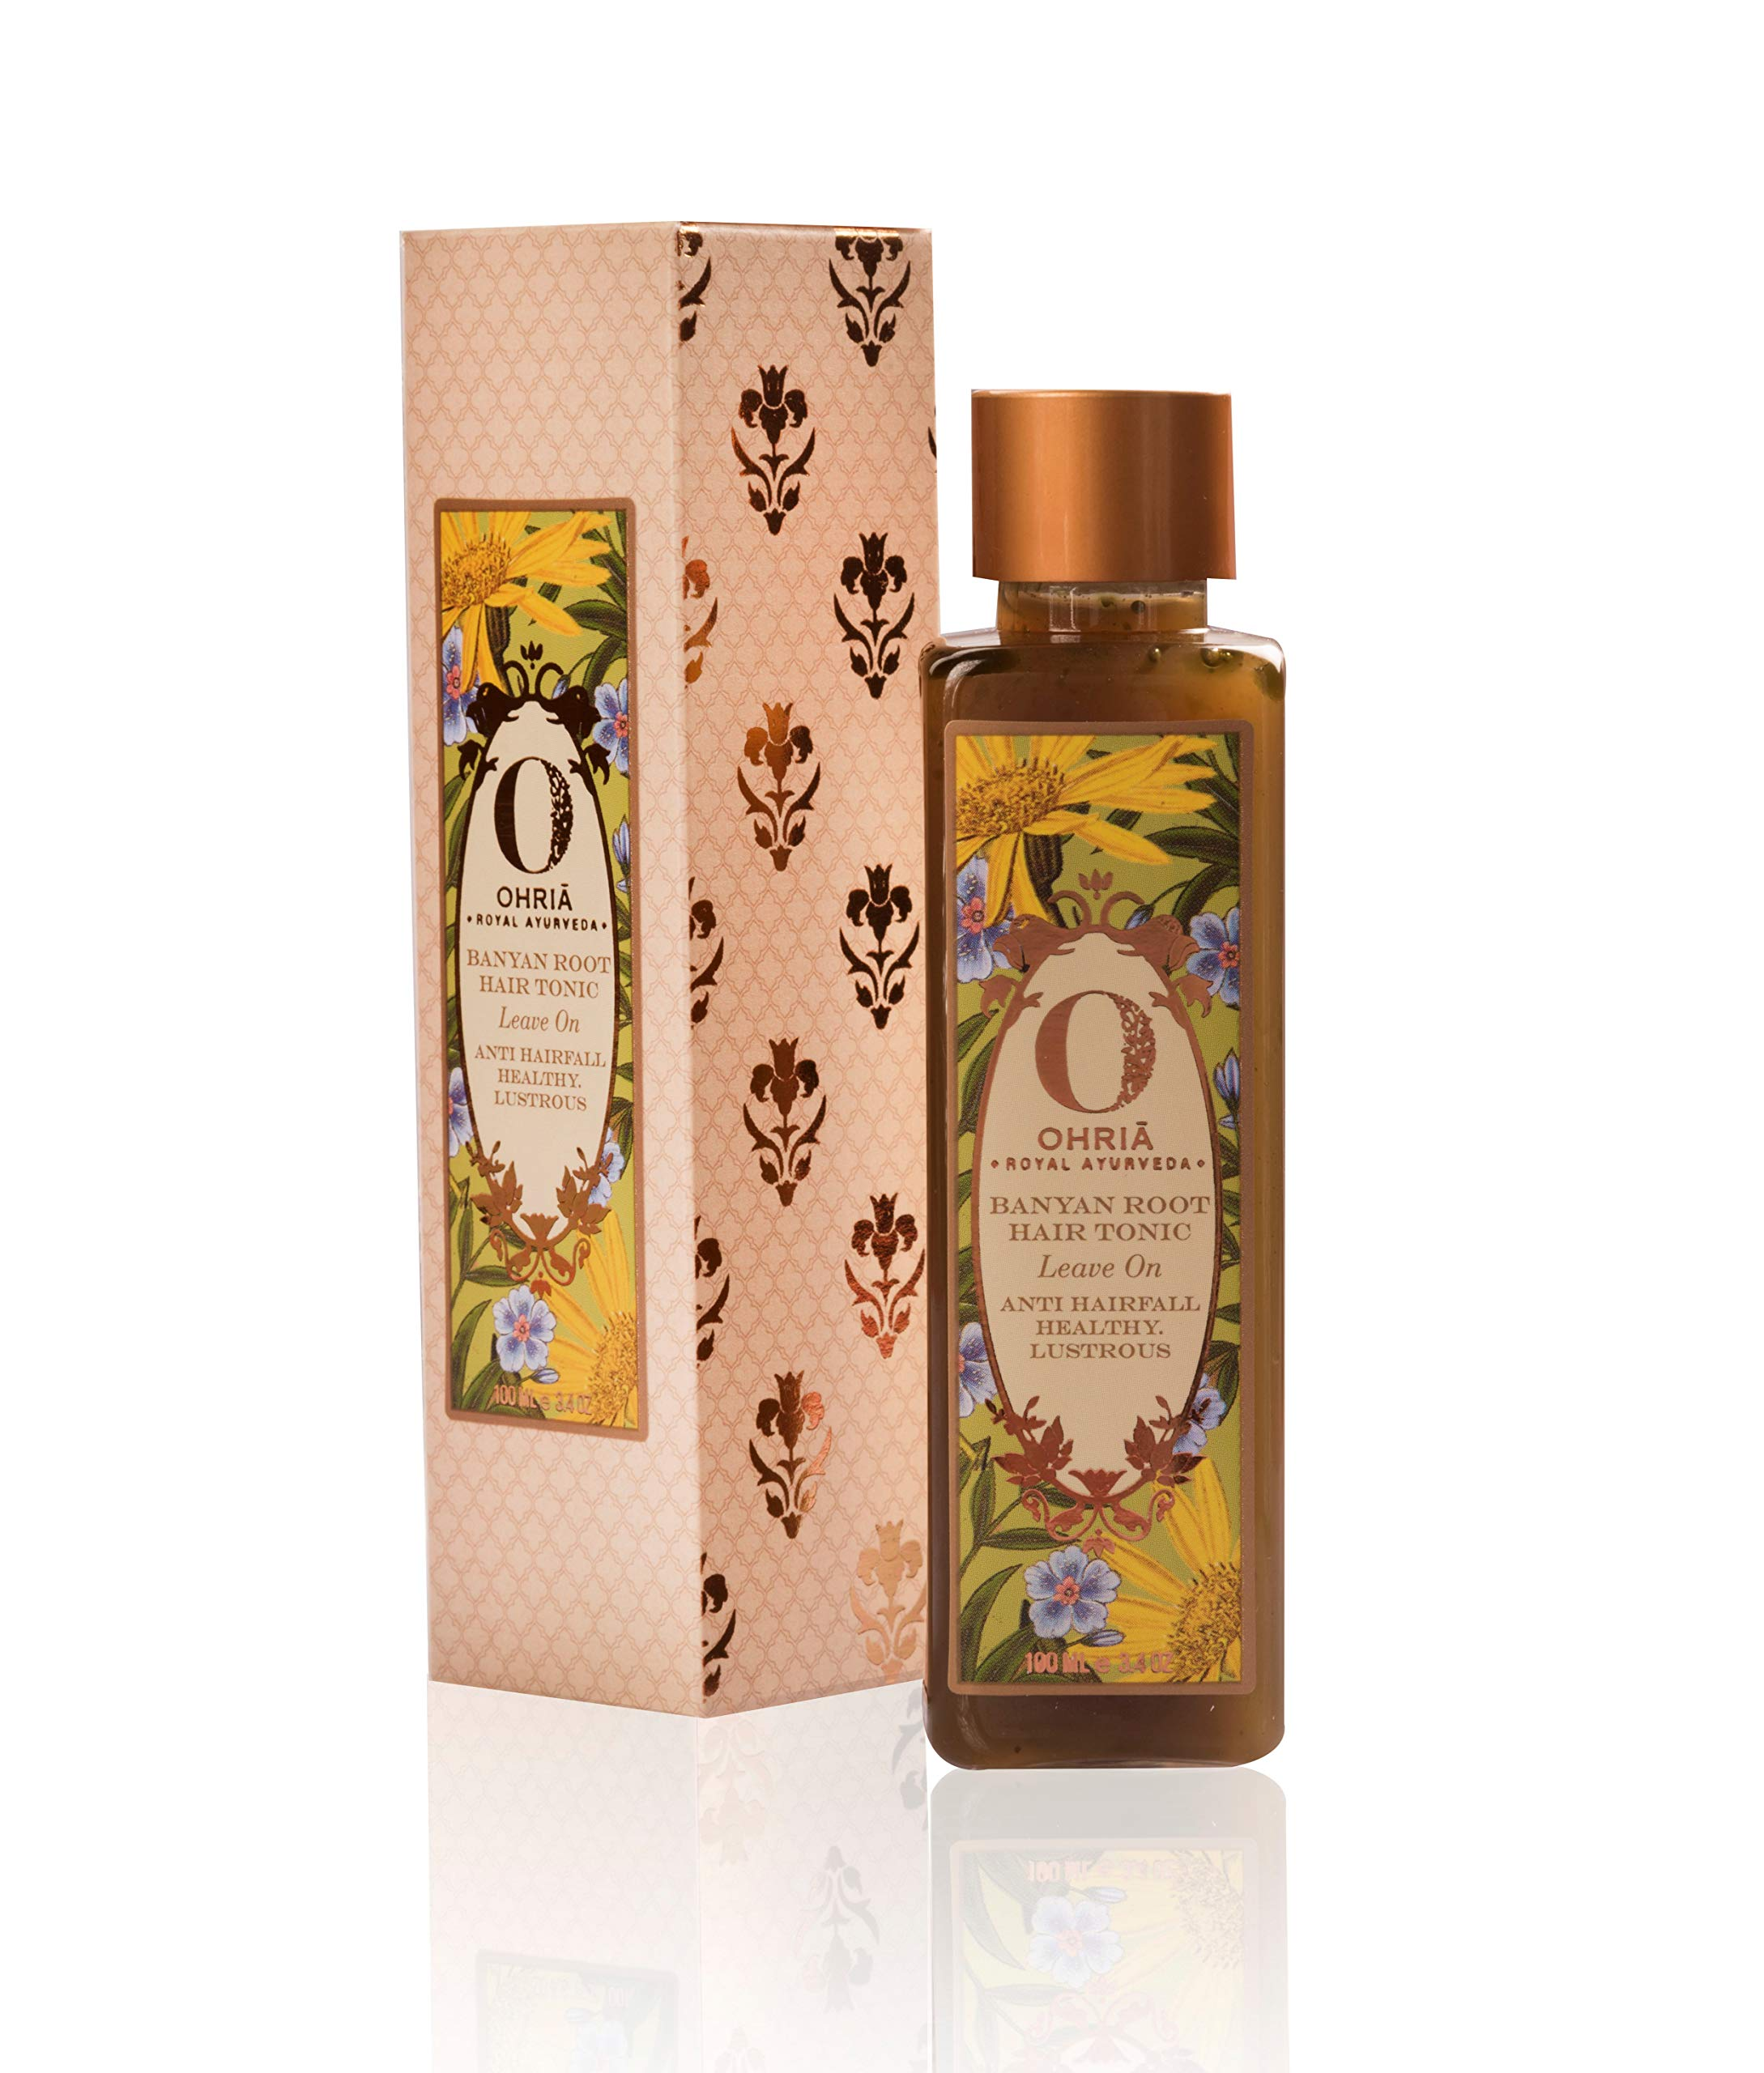 Ohria Ayurveda 100% Natural Banyan Root Hair Tonic | Hair Growth Tonic For All Hair Types - 200 ml/ e6.7 OZ by Ohria Ayurveda